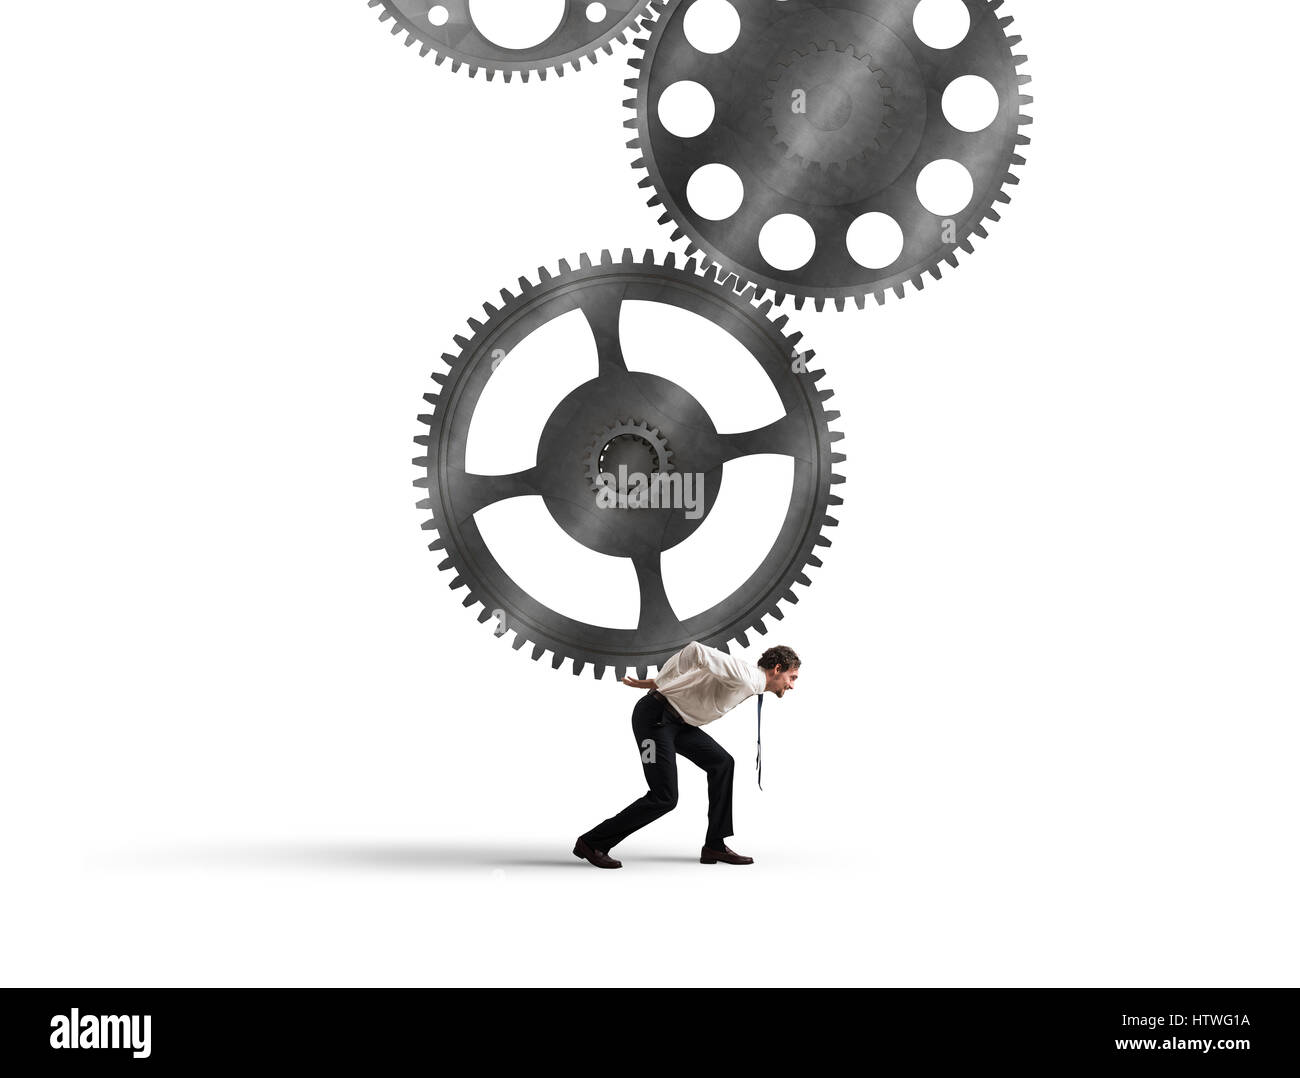 Integration concept with gears system mechanism - Stock Image